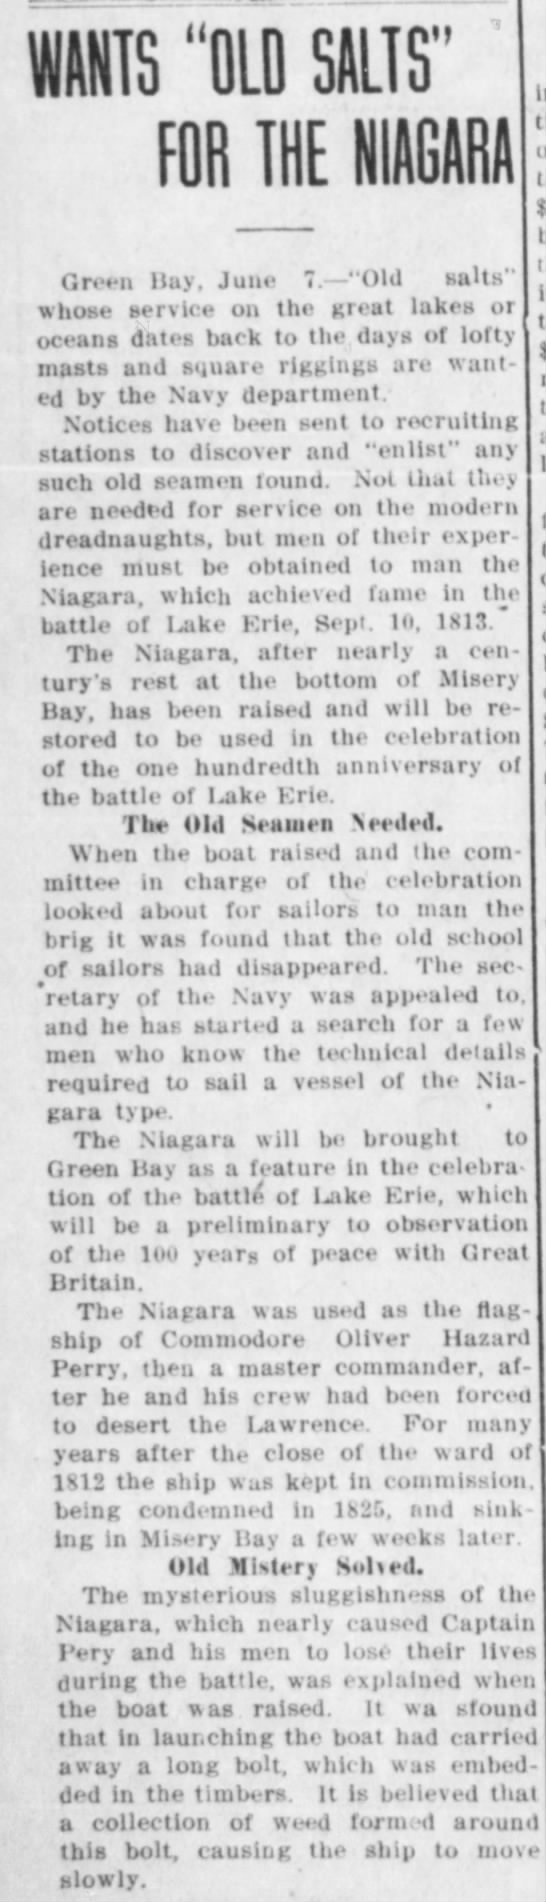 """Battle of Lake Erie - Brig Niagara - WANTS """"OLD SALTS"""" FOR THE Green Hay, June..."""